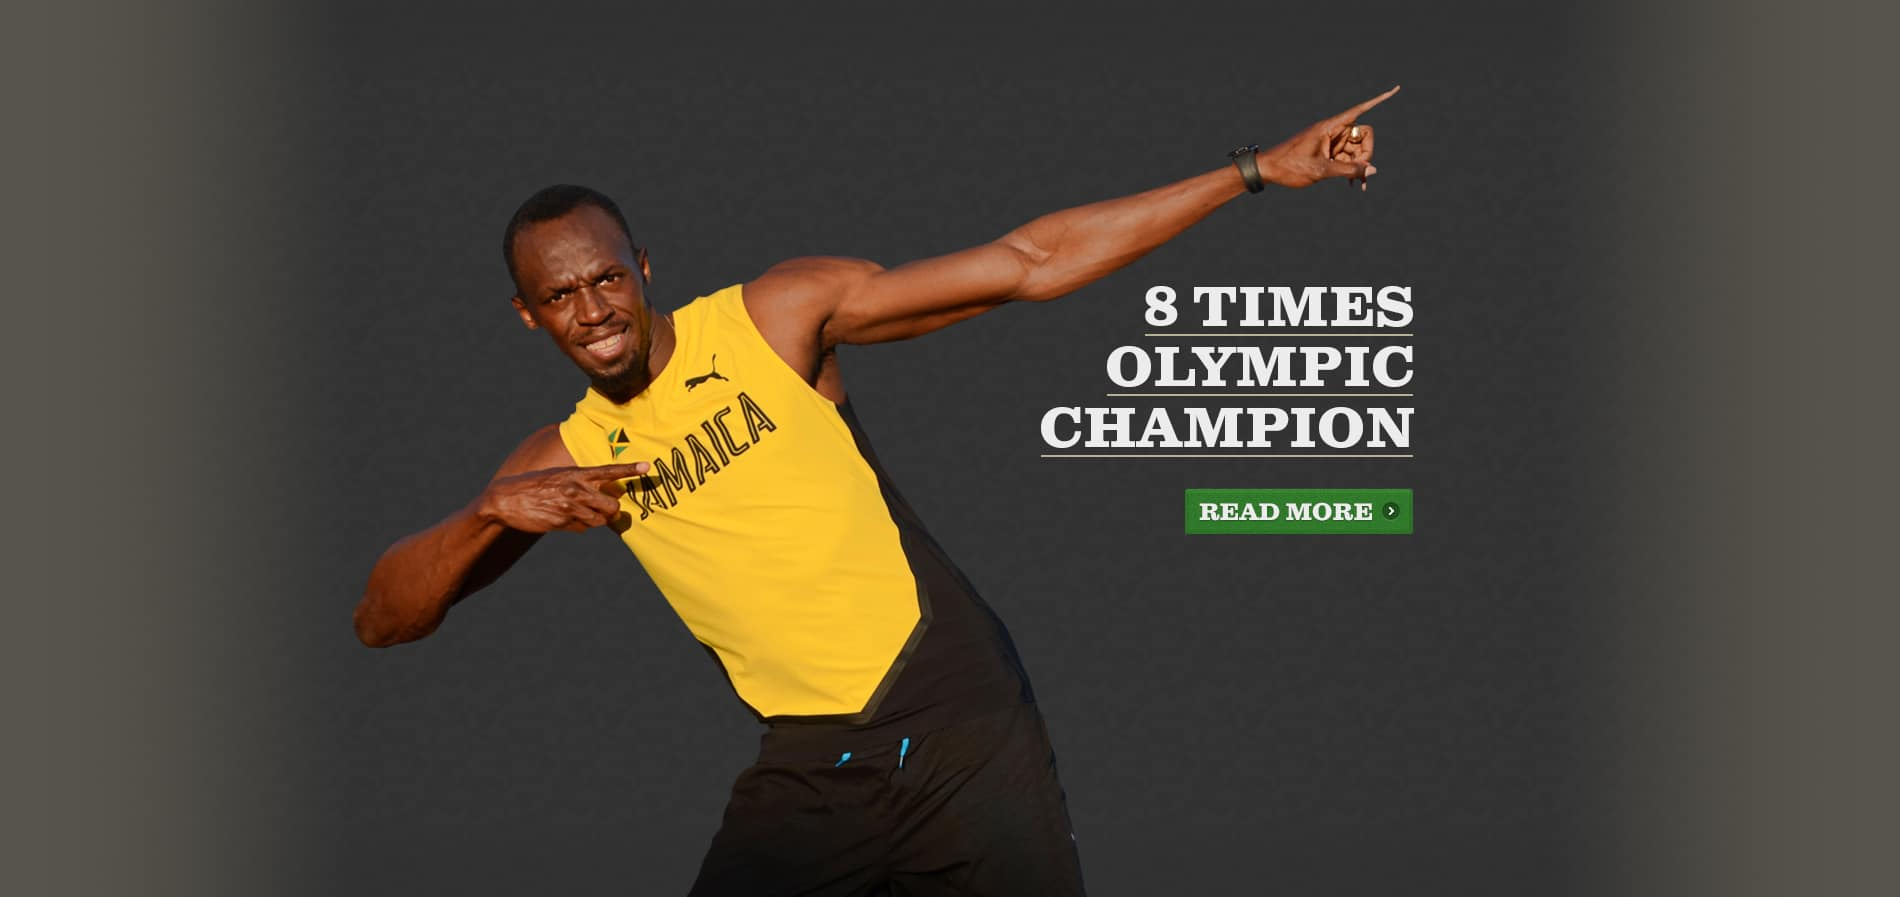 usain-bolt-individual-record-that-cannot-be-broken-easily-align-thoughts